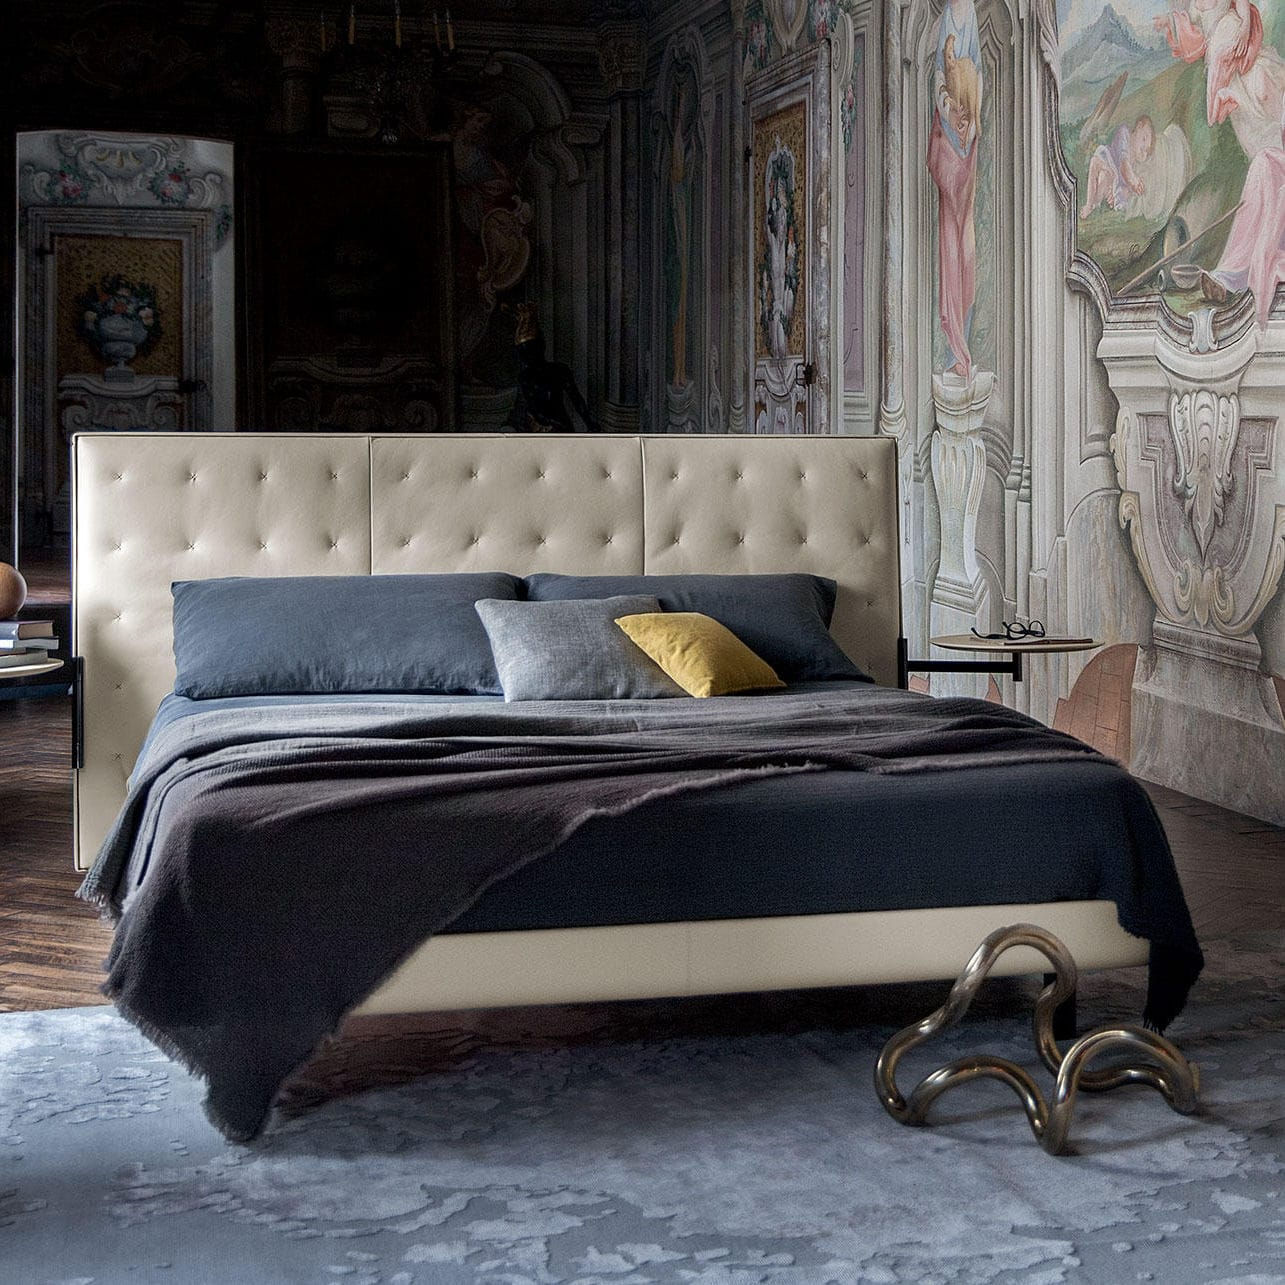 Letto Bluemoon Poltrona Frau.Double Bed Contemporary Upholstered With Headboard Jack